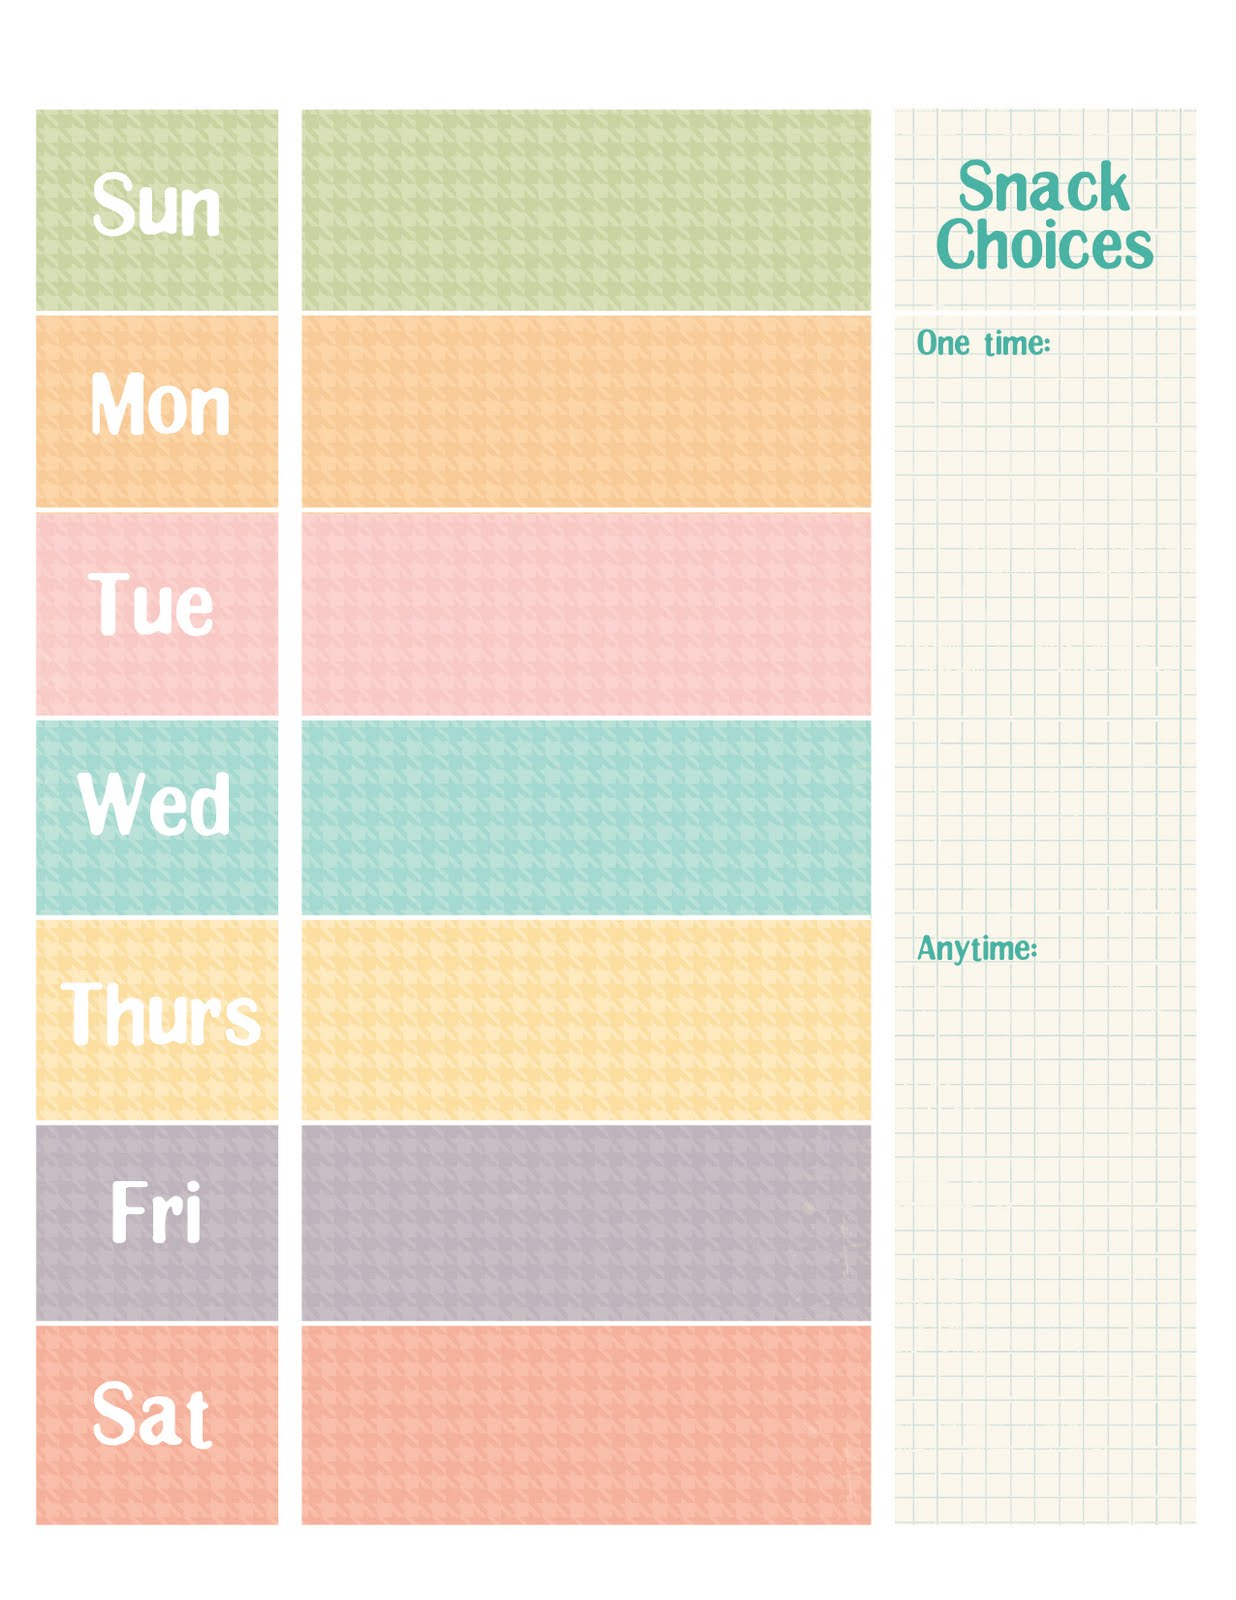 weekly schedule chart